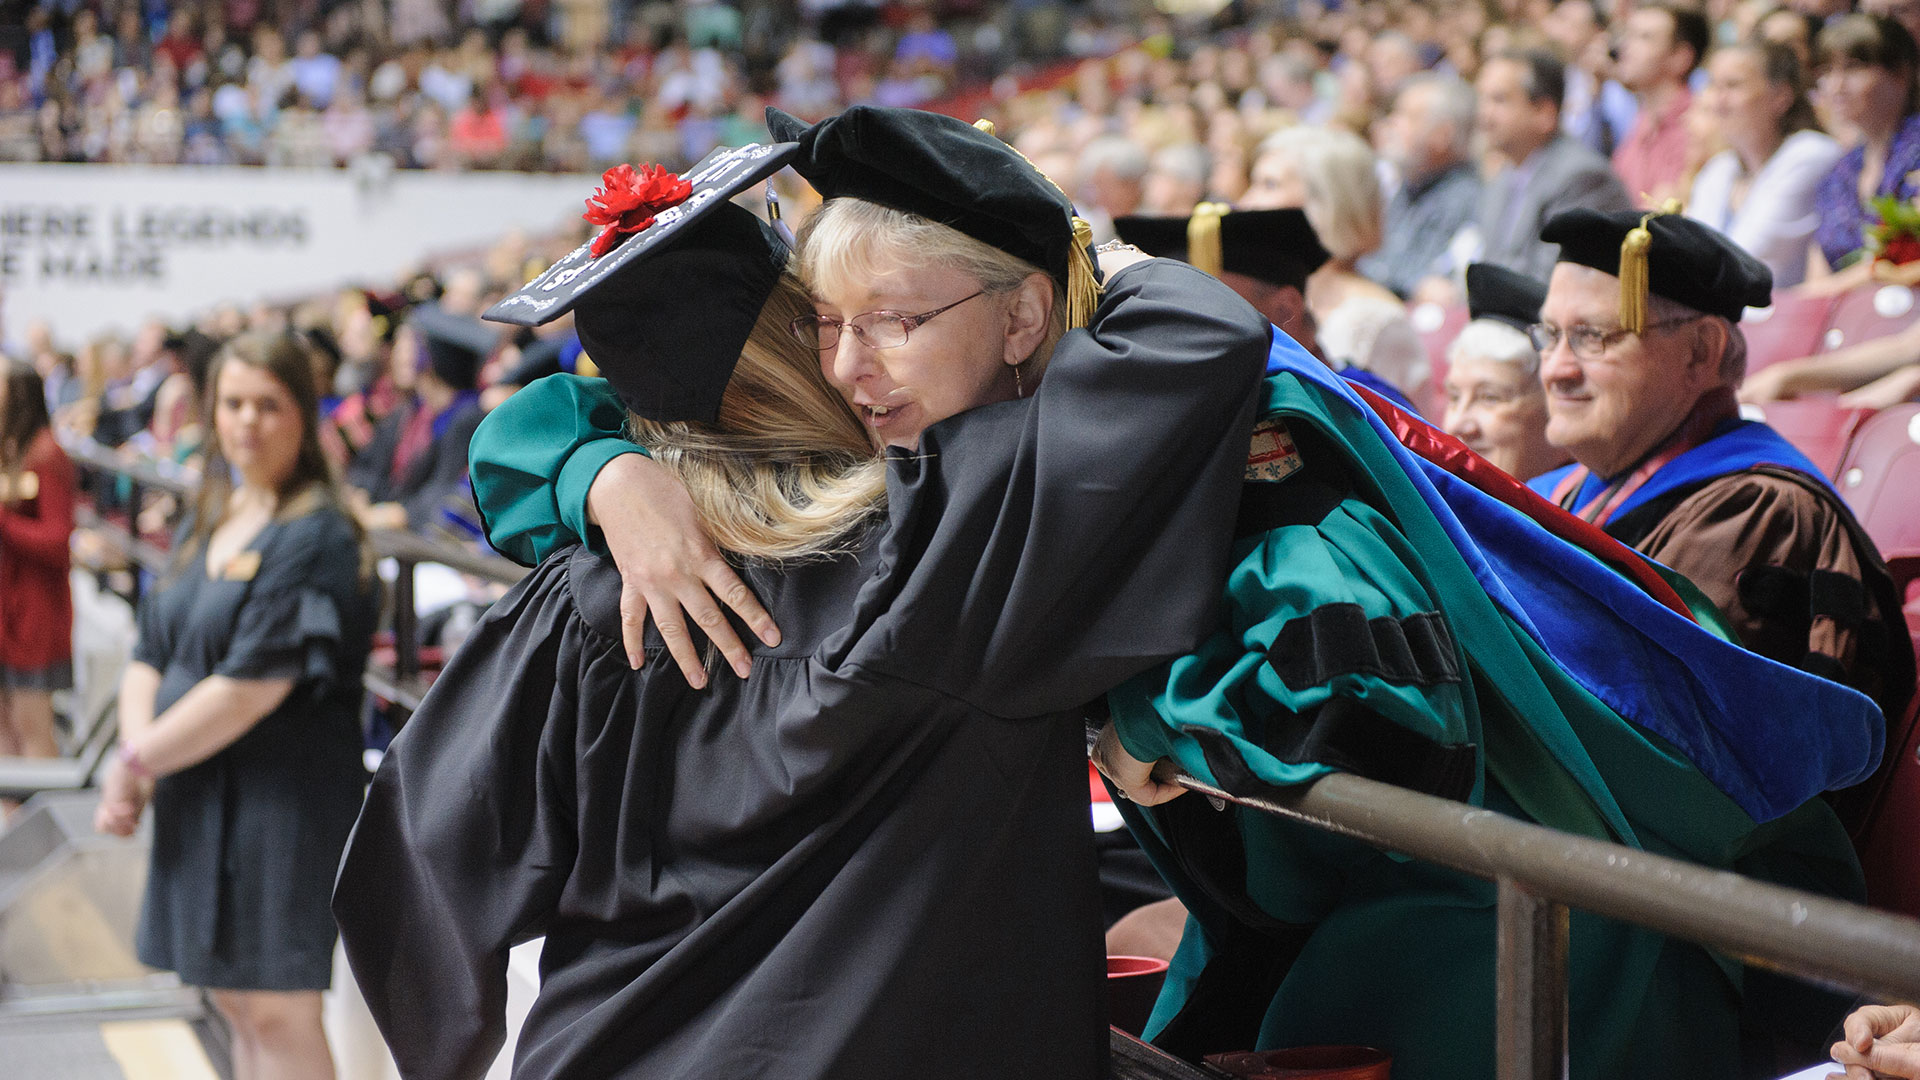 A graduate reaches up over the rails to hug a professor after her walk across the stage.